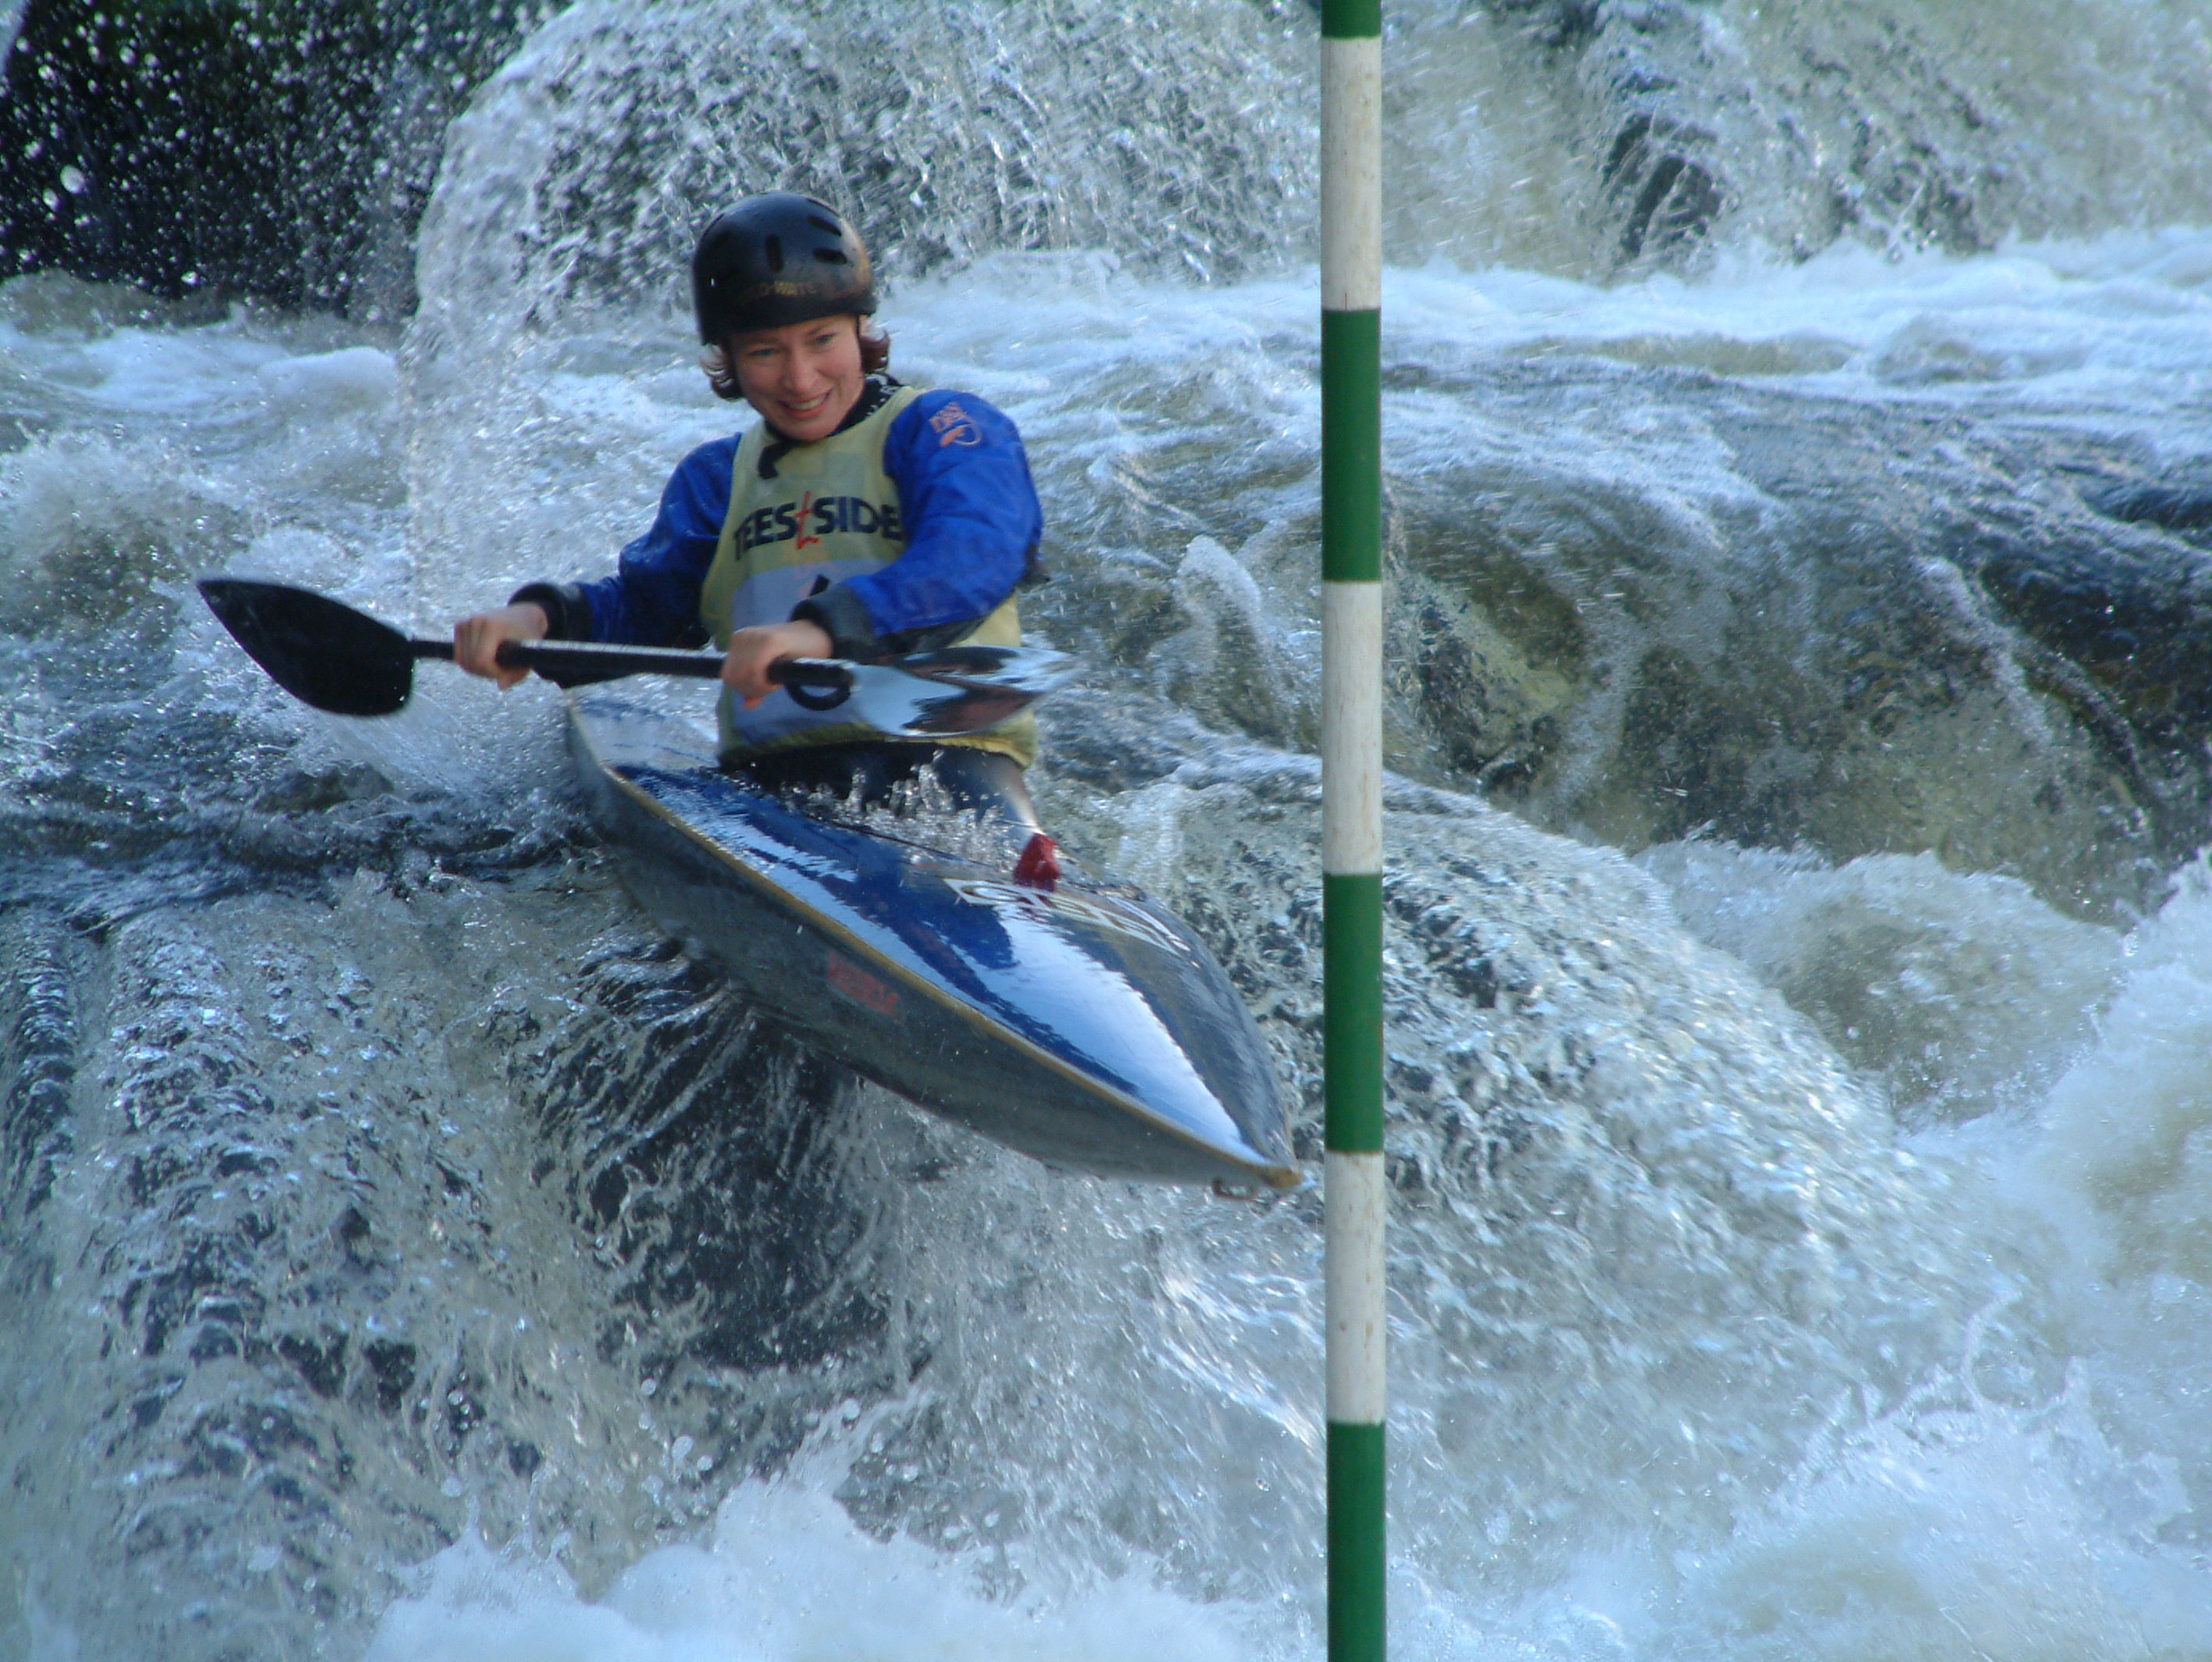 Helen Cardy in action at Llangollen - 2001